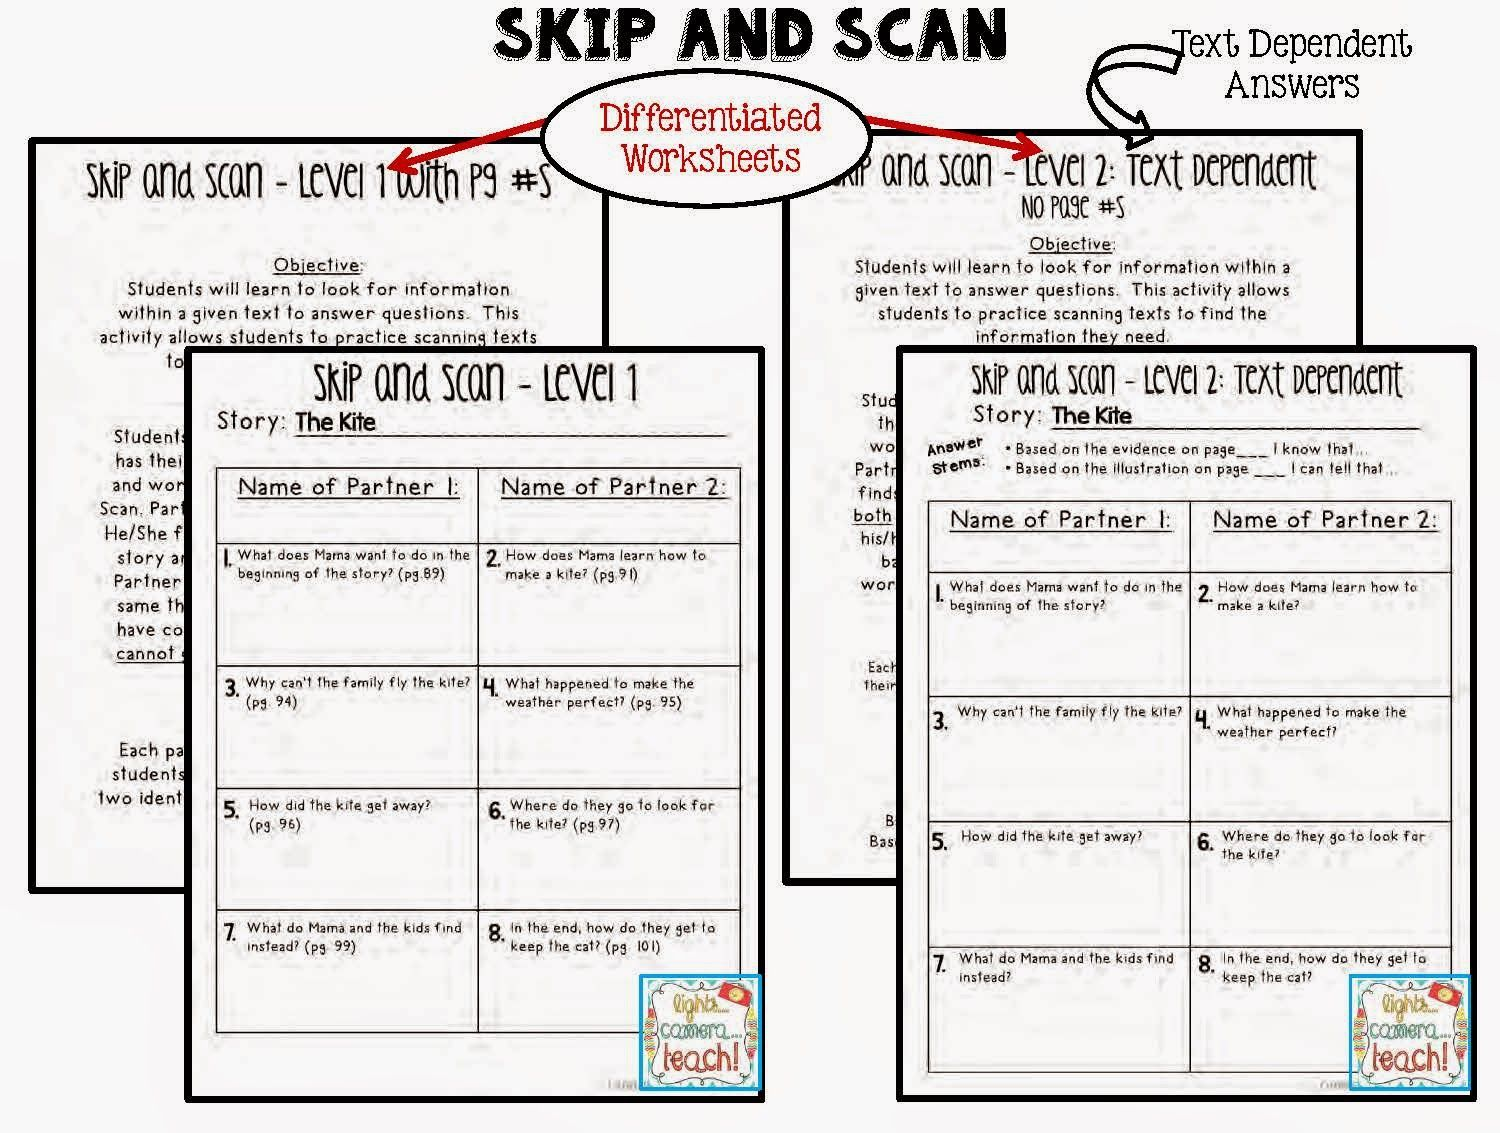 Skip And Scan 2 Different Levels Level 2 Requires Text Dependent Answers Great For